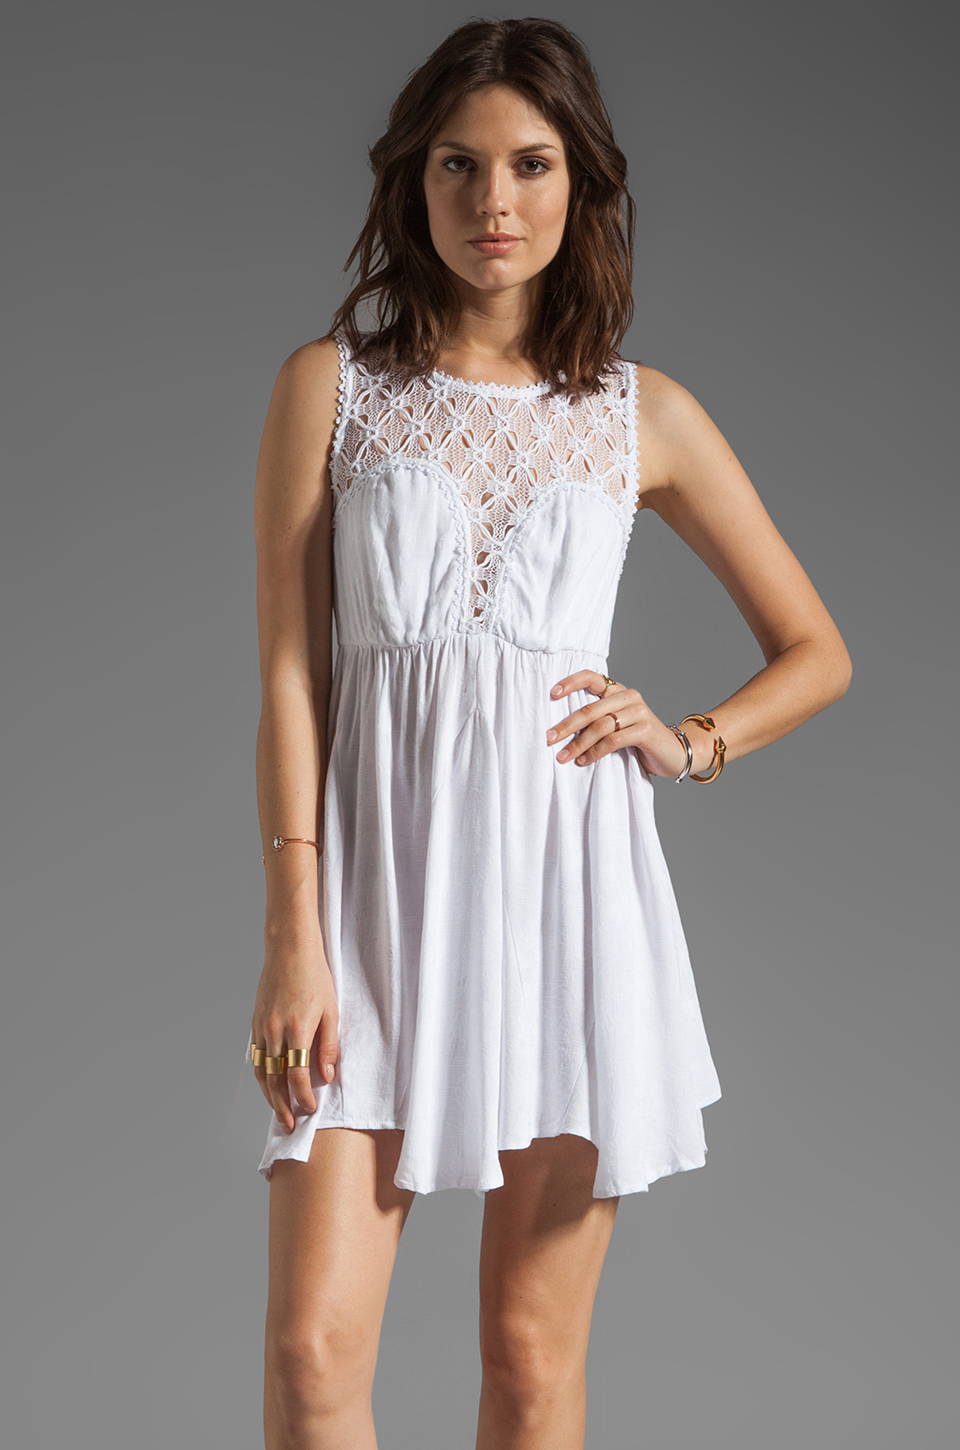 Free People Fiesta Dress in White